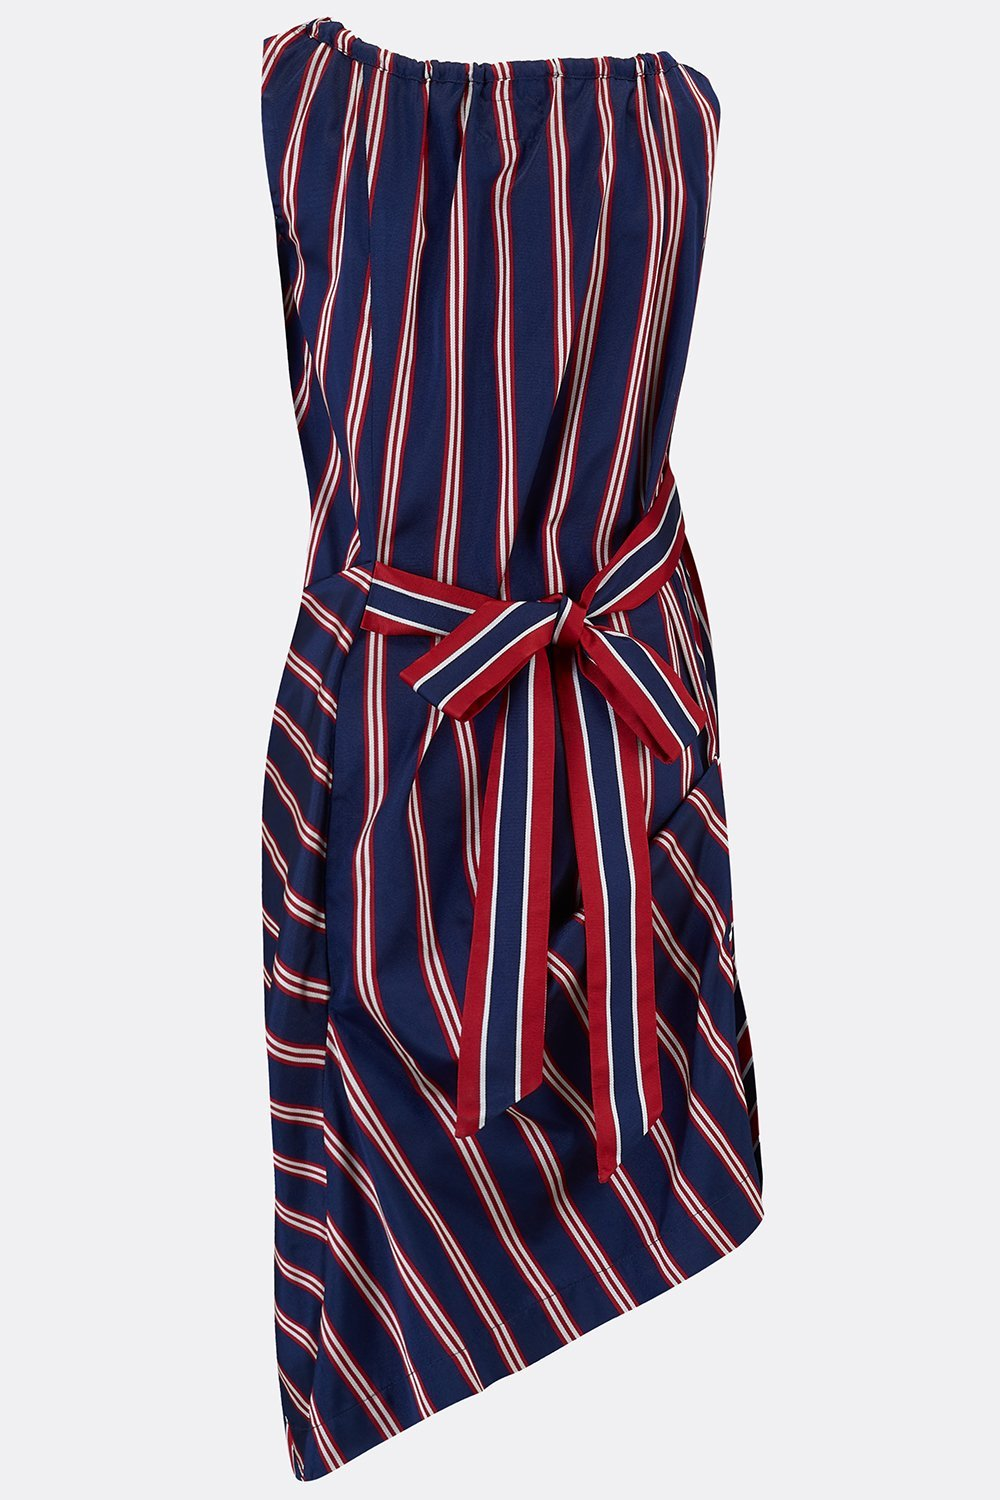 ROCHESTER SWAG DRESS IN NAVY STRIPE-womenswear-A Child Of The Jago